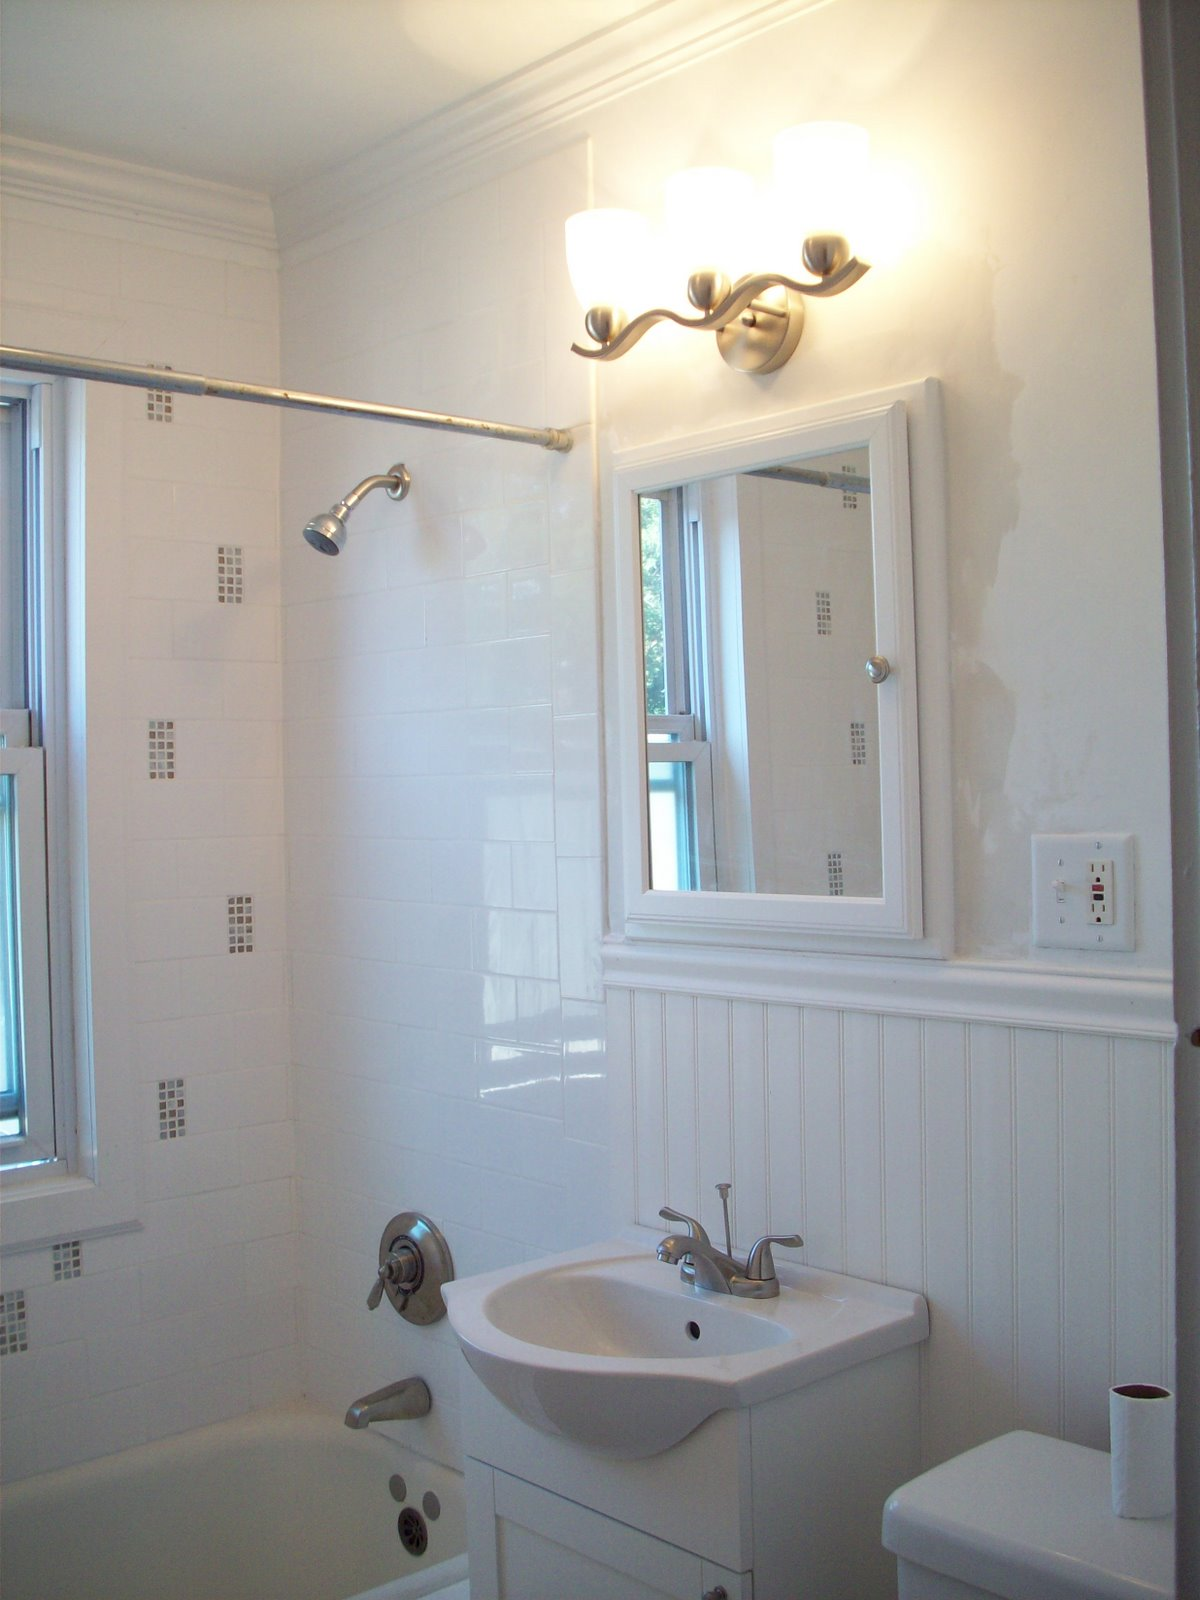 DESIGN IMAGINE DESIGN BUILD Cape Cod Style Bathroom Remodel JML